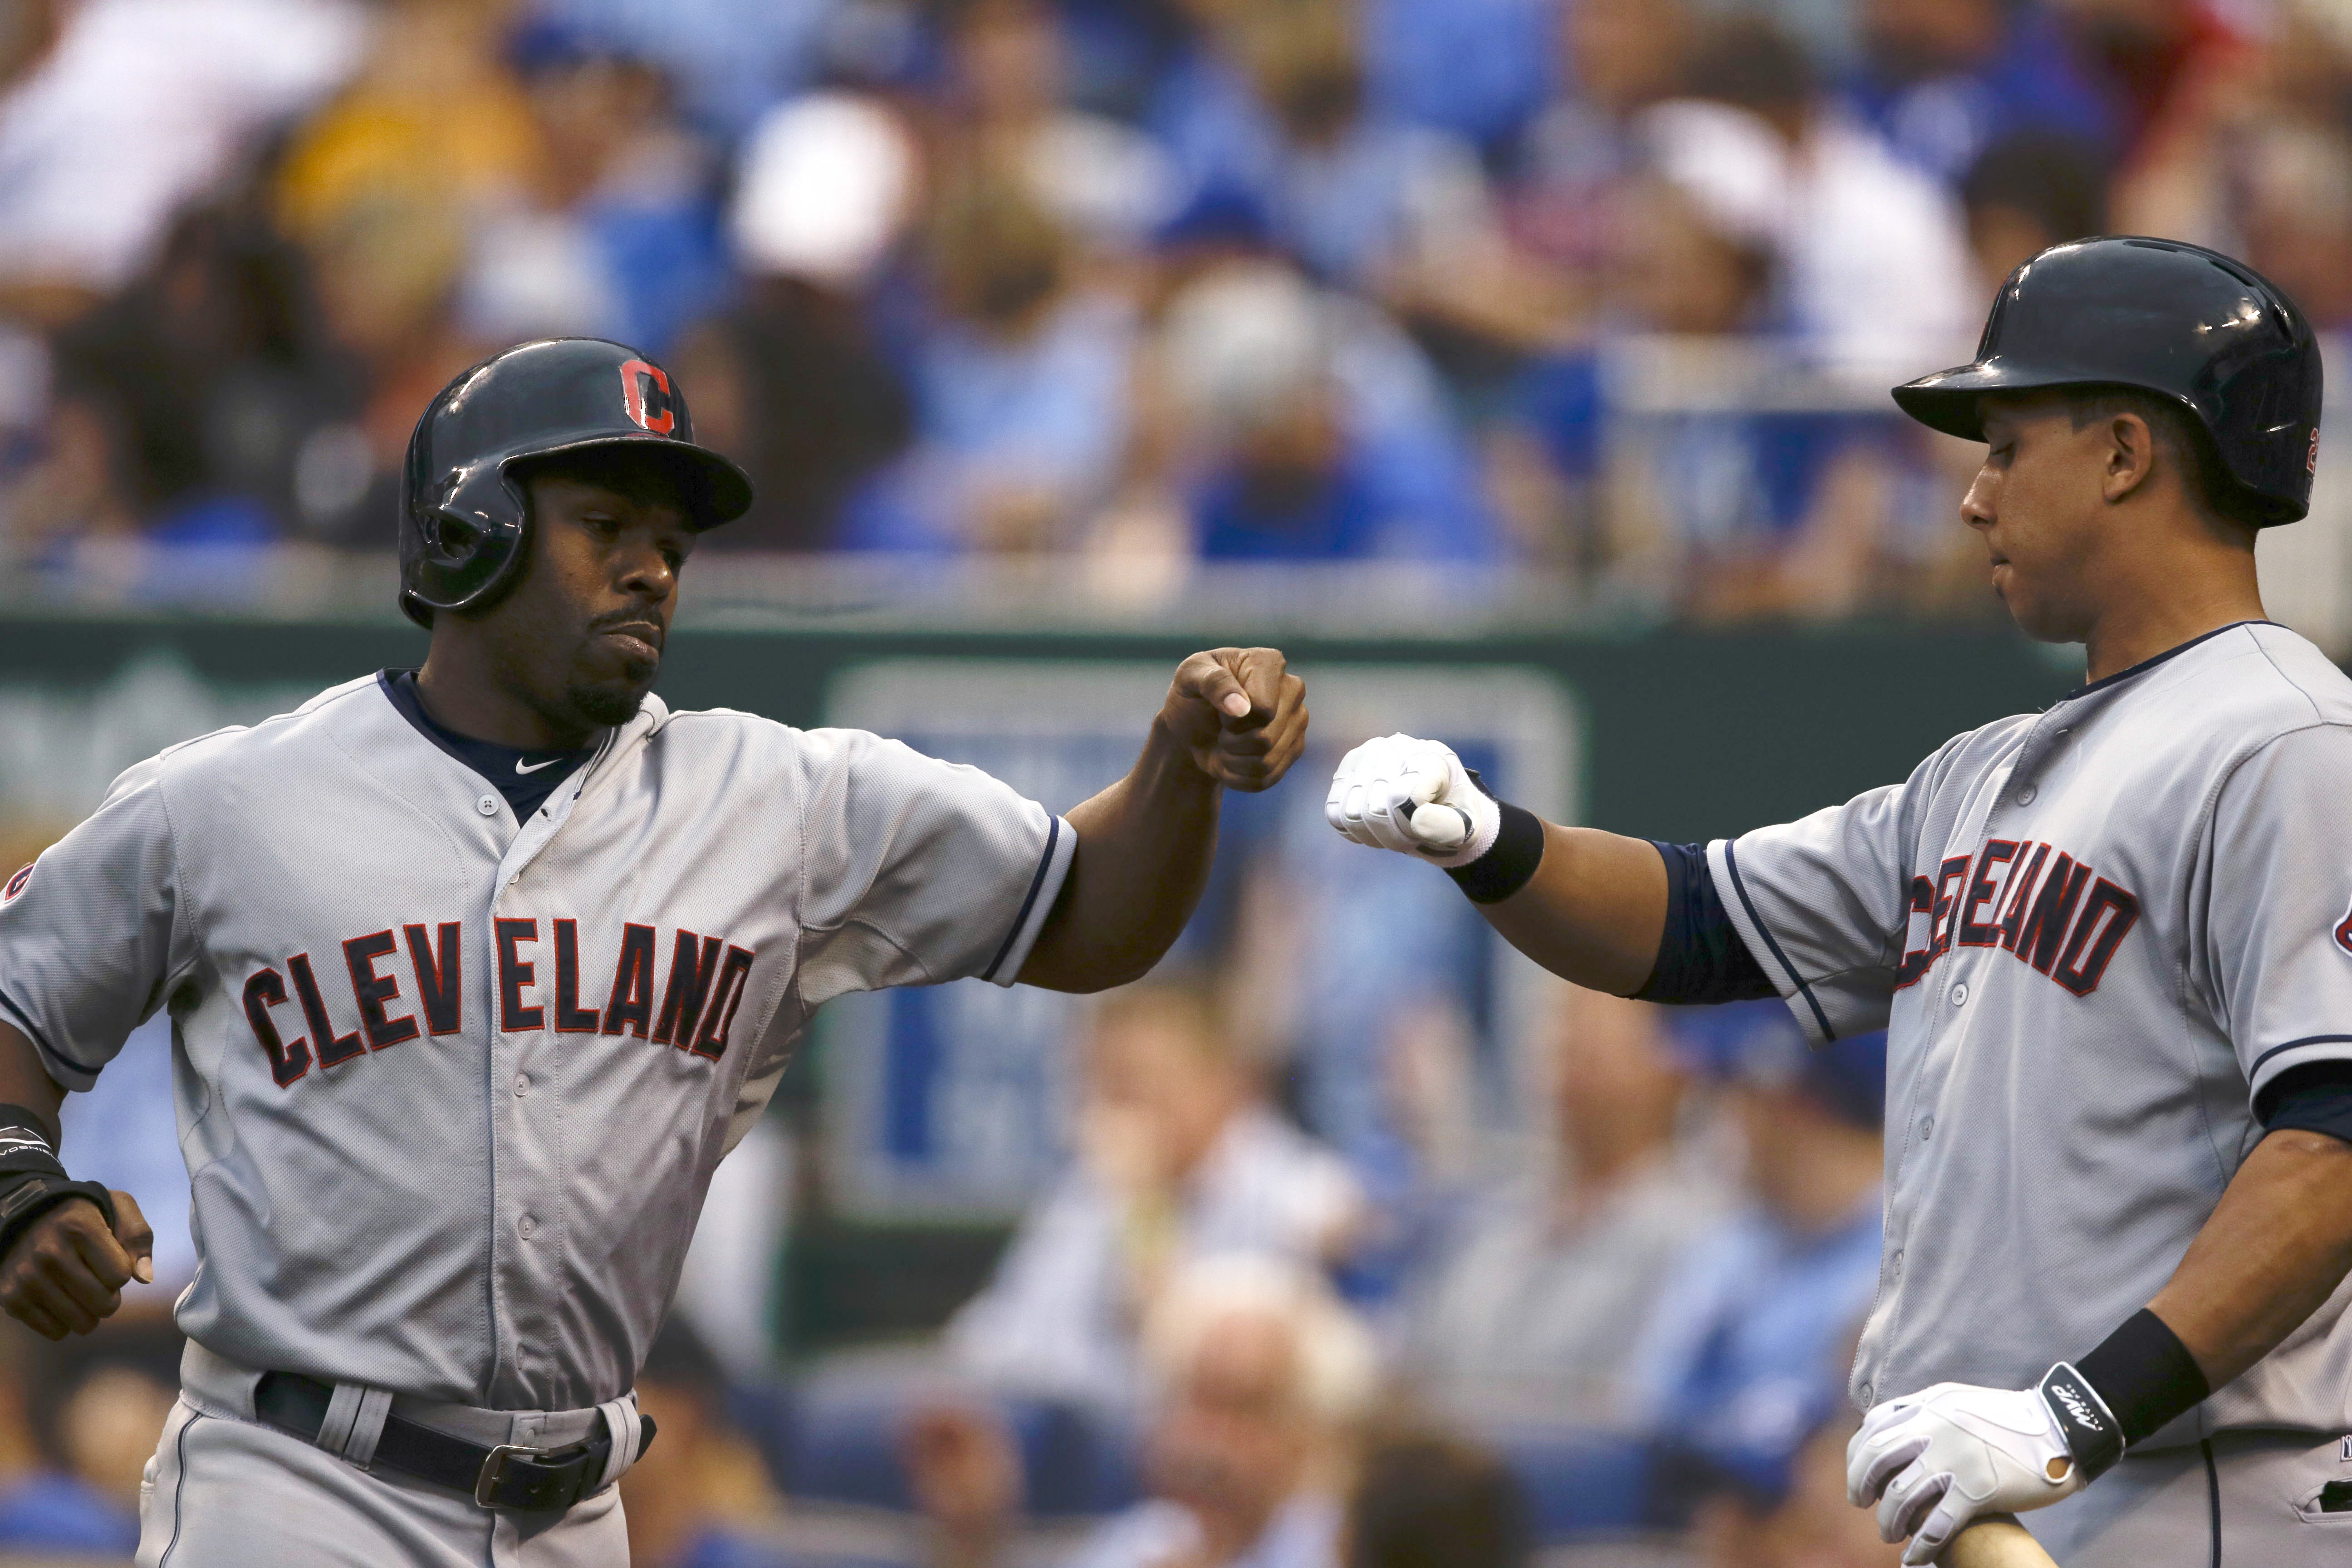 Cleveland Indians' Michael Bourn, left, is congratulated by teammate Roberto Perez after scoring on a Jason Kipnis single during the third inning of a baseball game against the Kansas City Royals at Kauffman Stadium in Kansas City, Mo., Thursday, June 4,